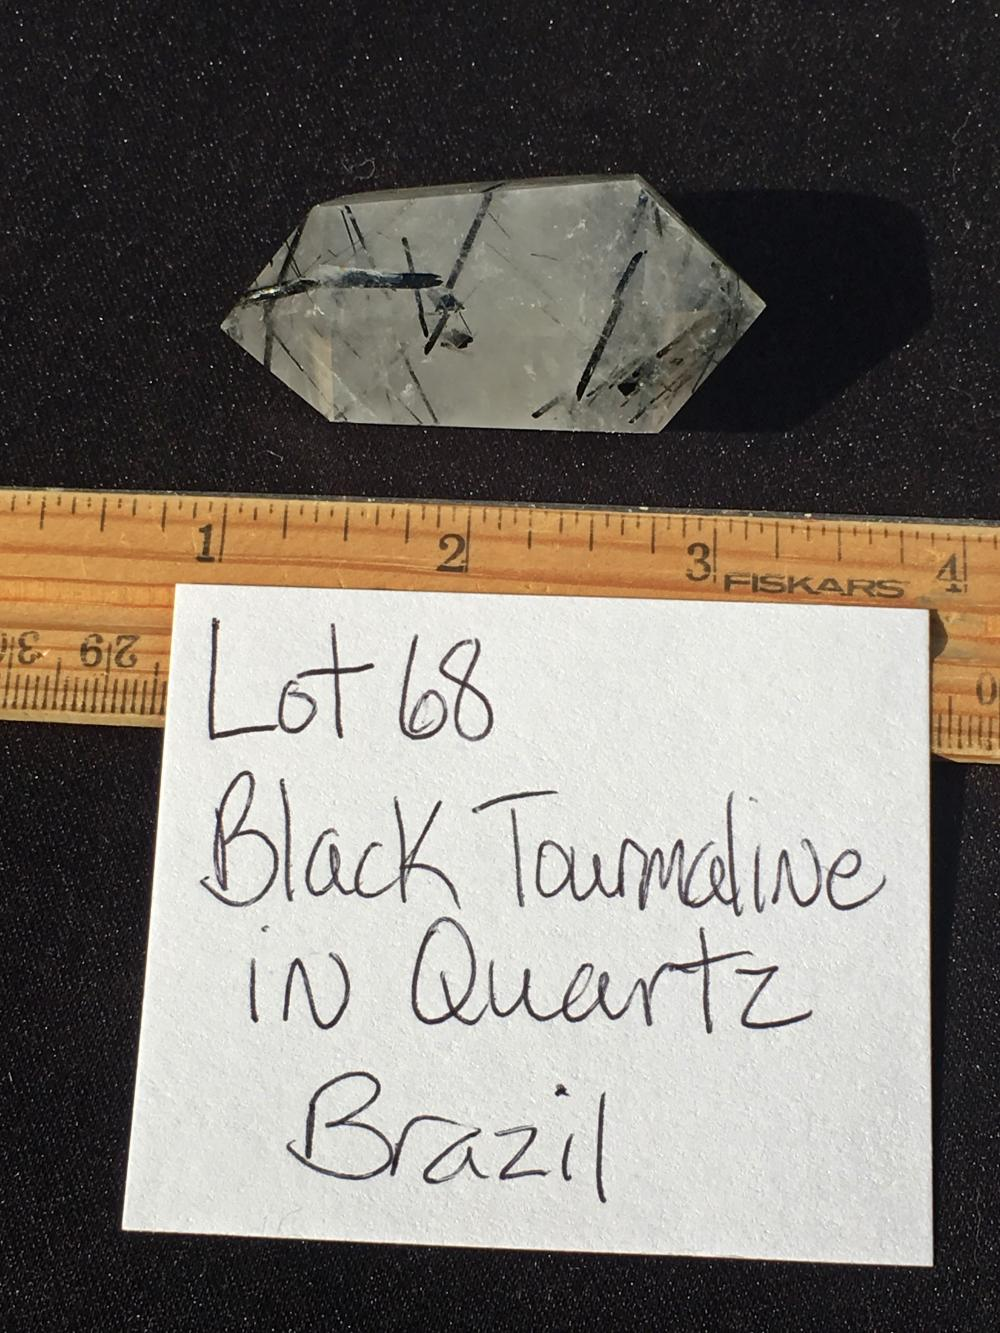 Lot 68: Quartz, Rock, Crystal, Natural, Collectible, Mineral, Massage, Metaphysical, Tourmaline